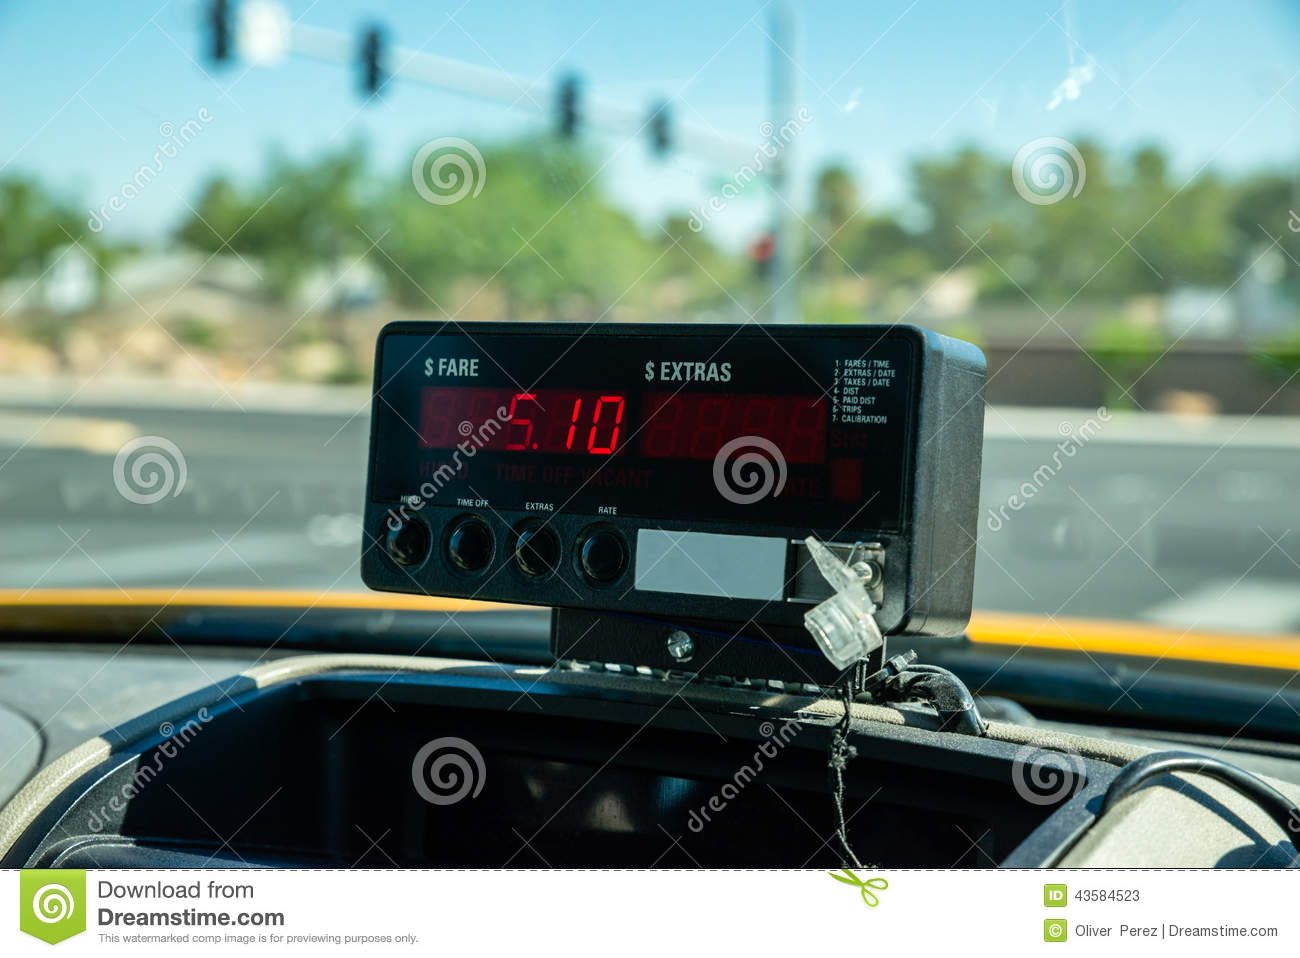 Taxi Meters Purchase : Taxi meter stock image cartoondealer